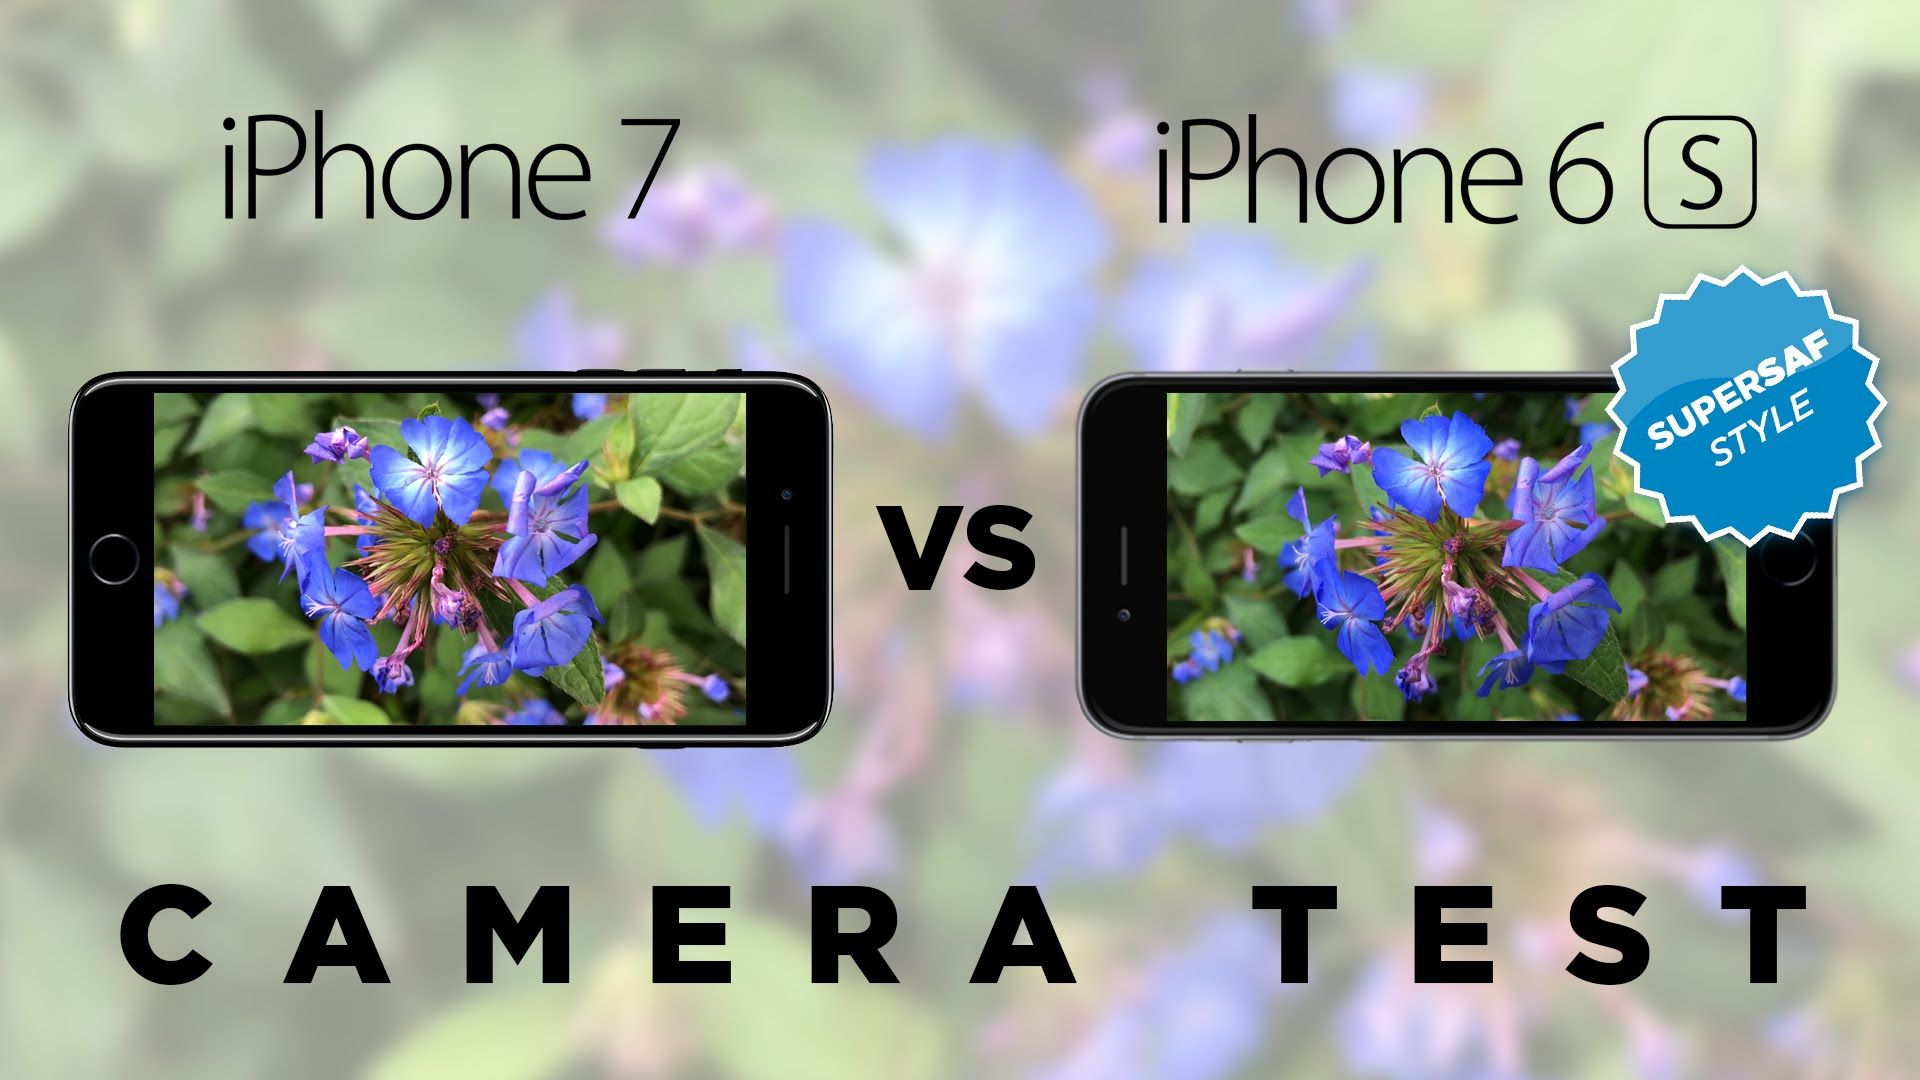 iphone 6s vs 6s plus camera difference